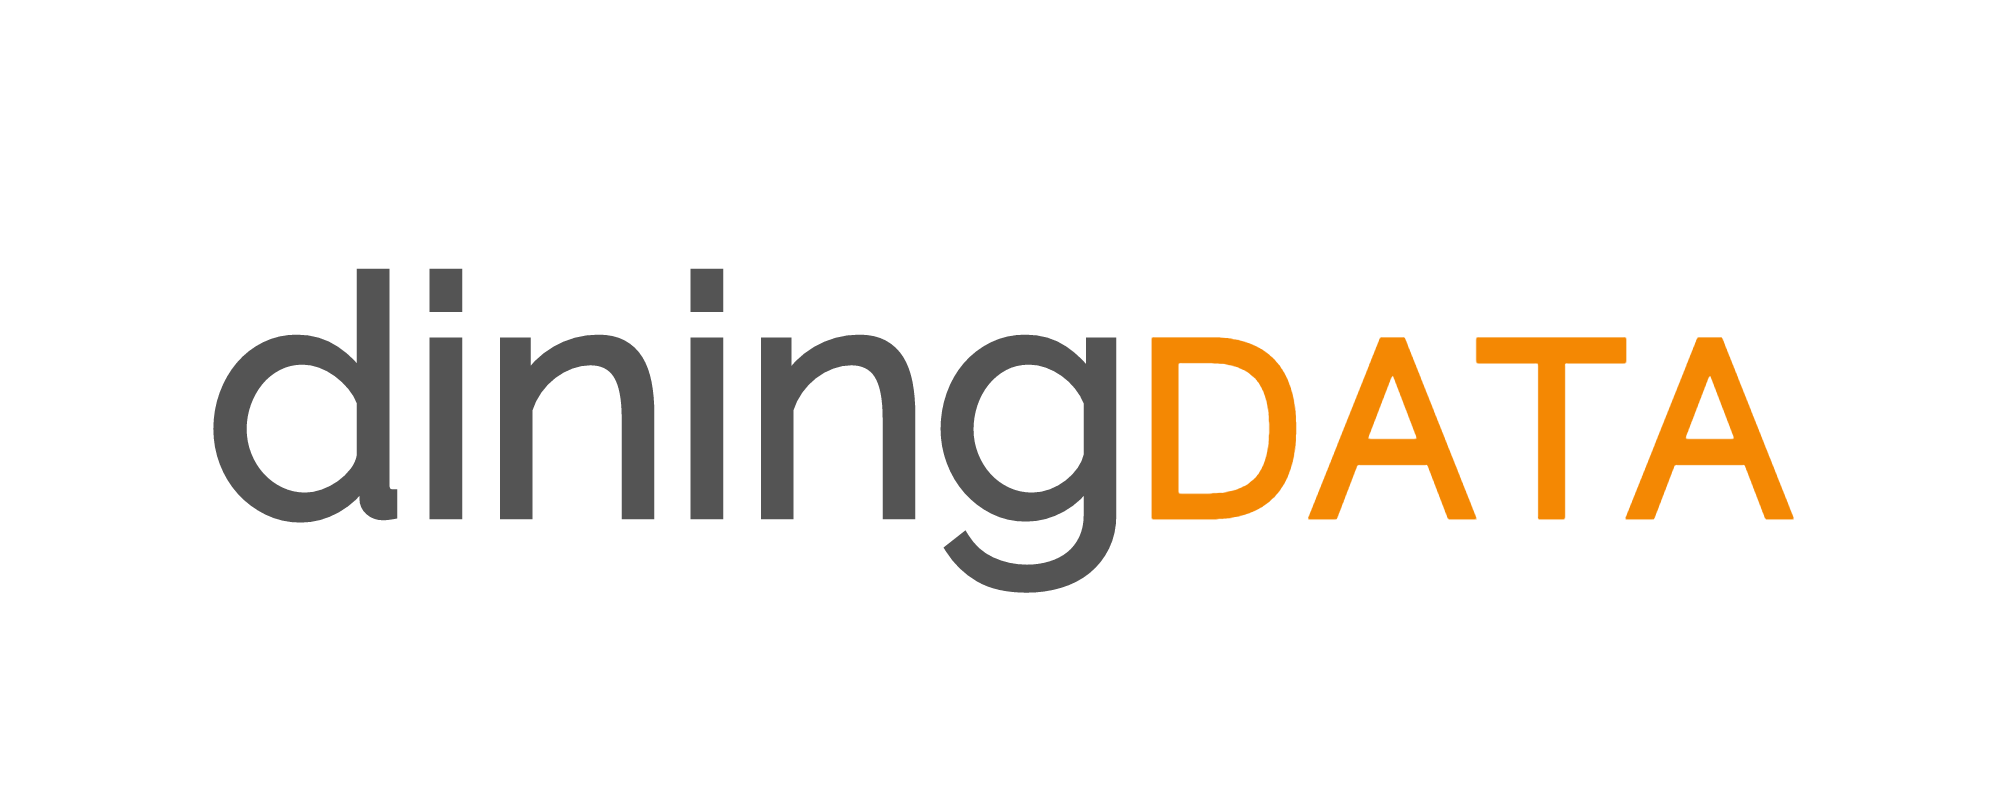 Dining Data - Company Logo.png